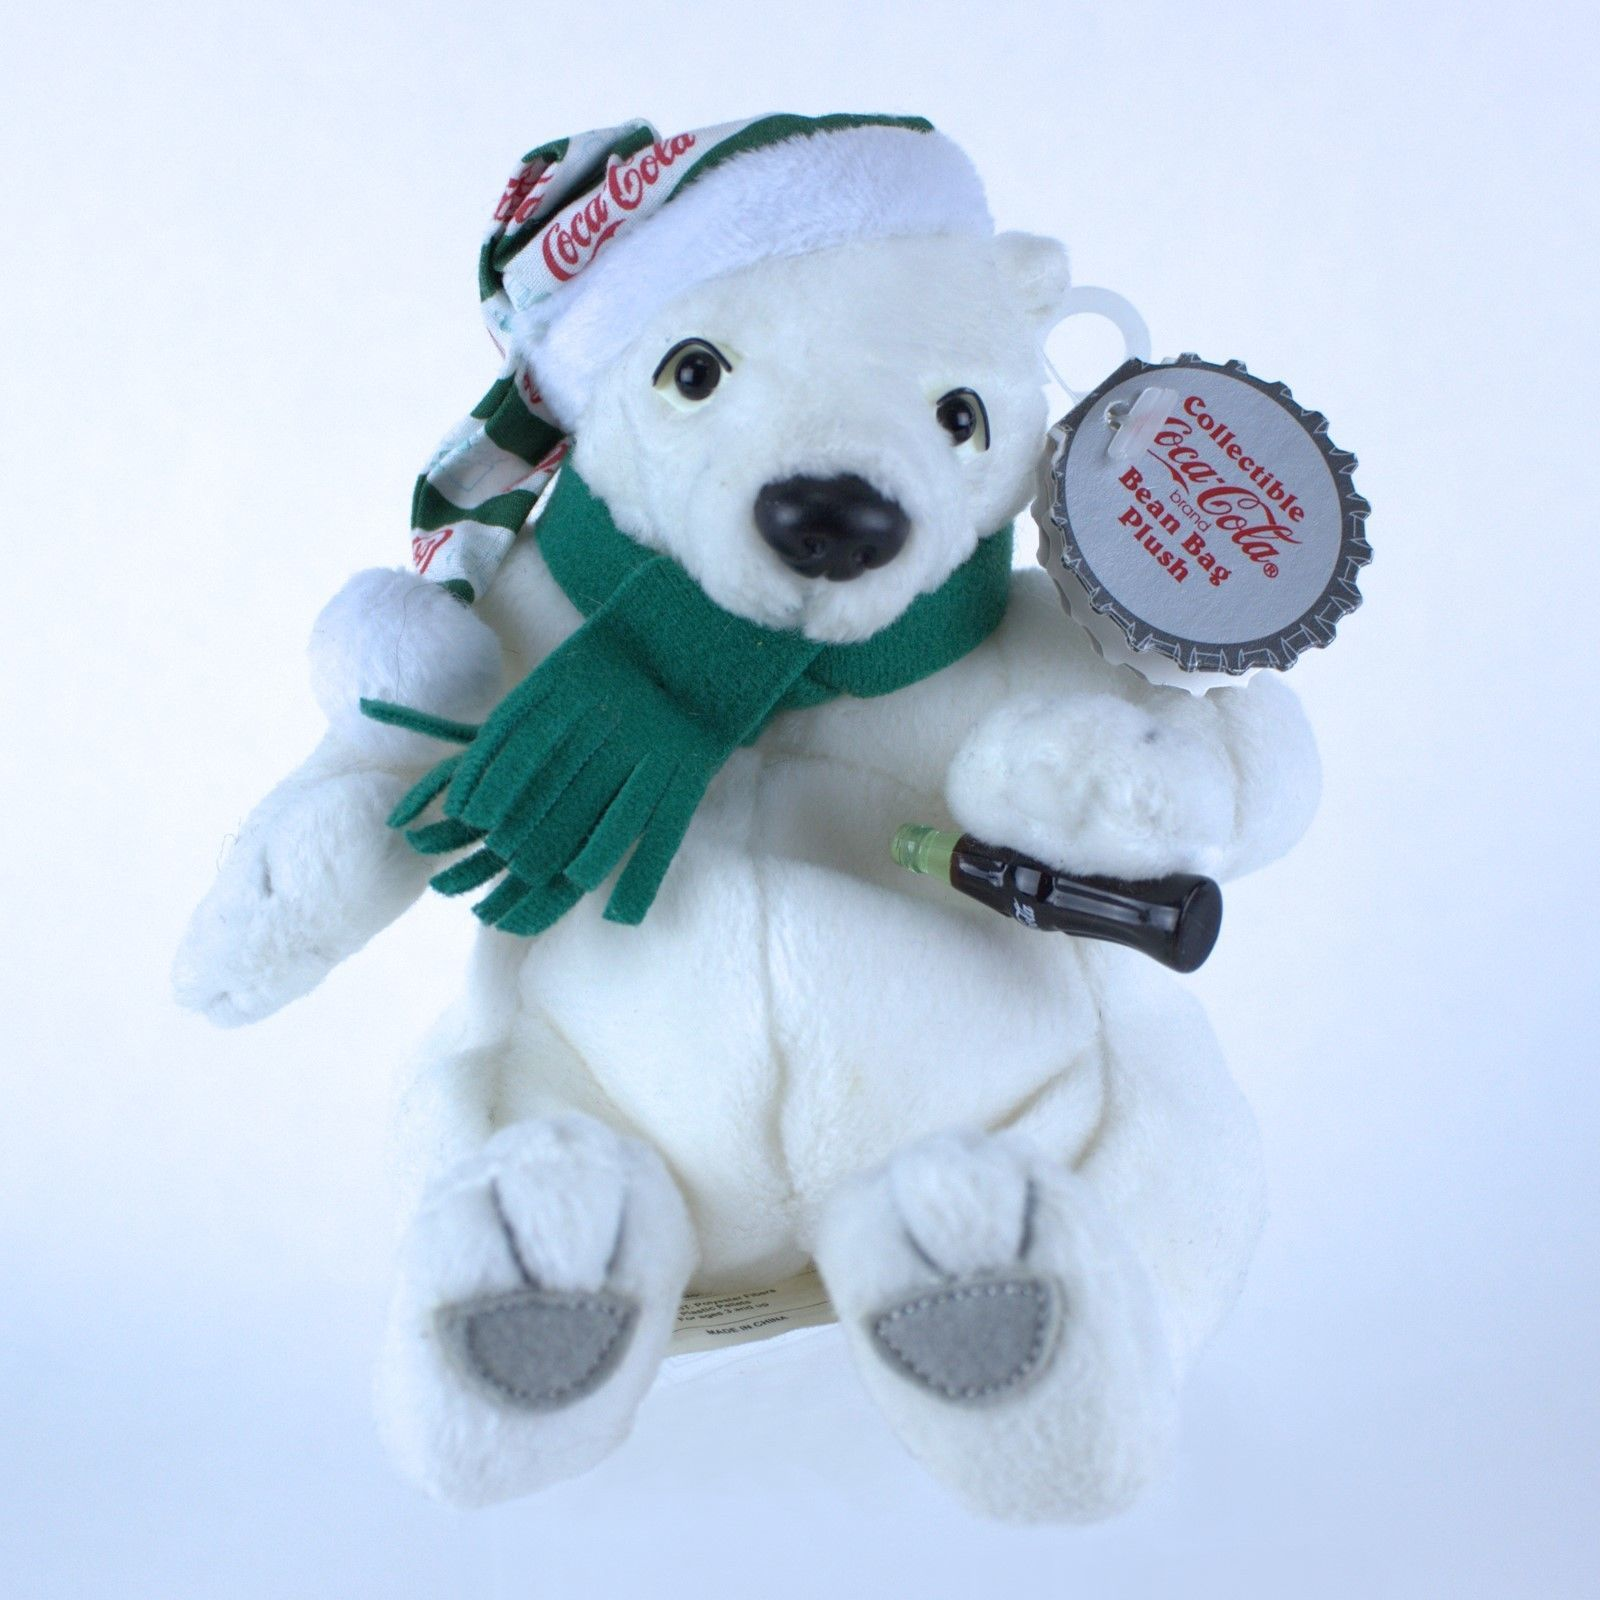 502059ffffb Coca-cola Plush Doll (1990s)  1 customer review and 5 listings